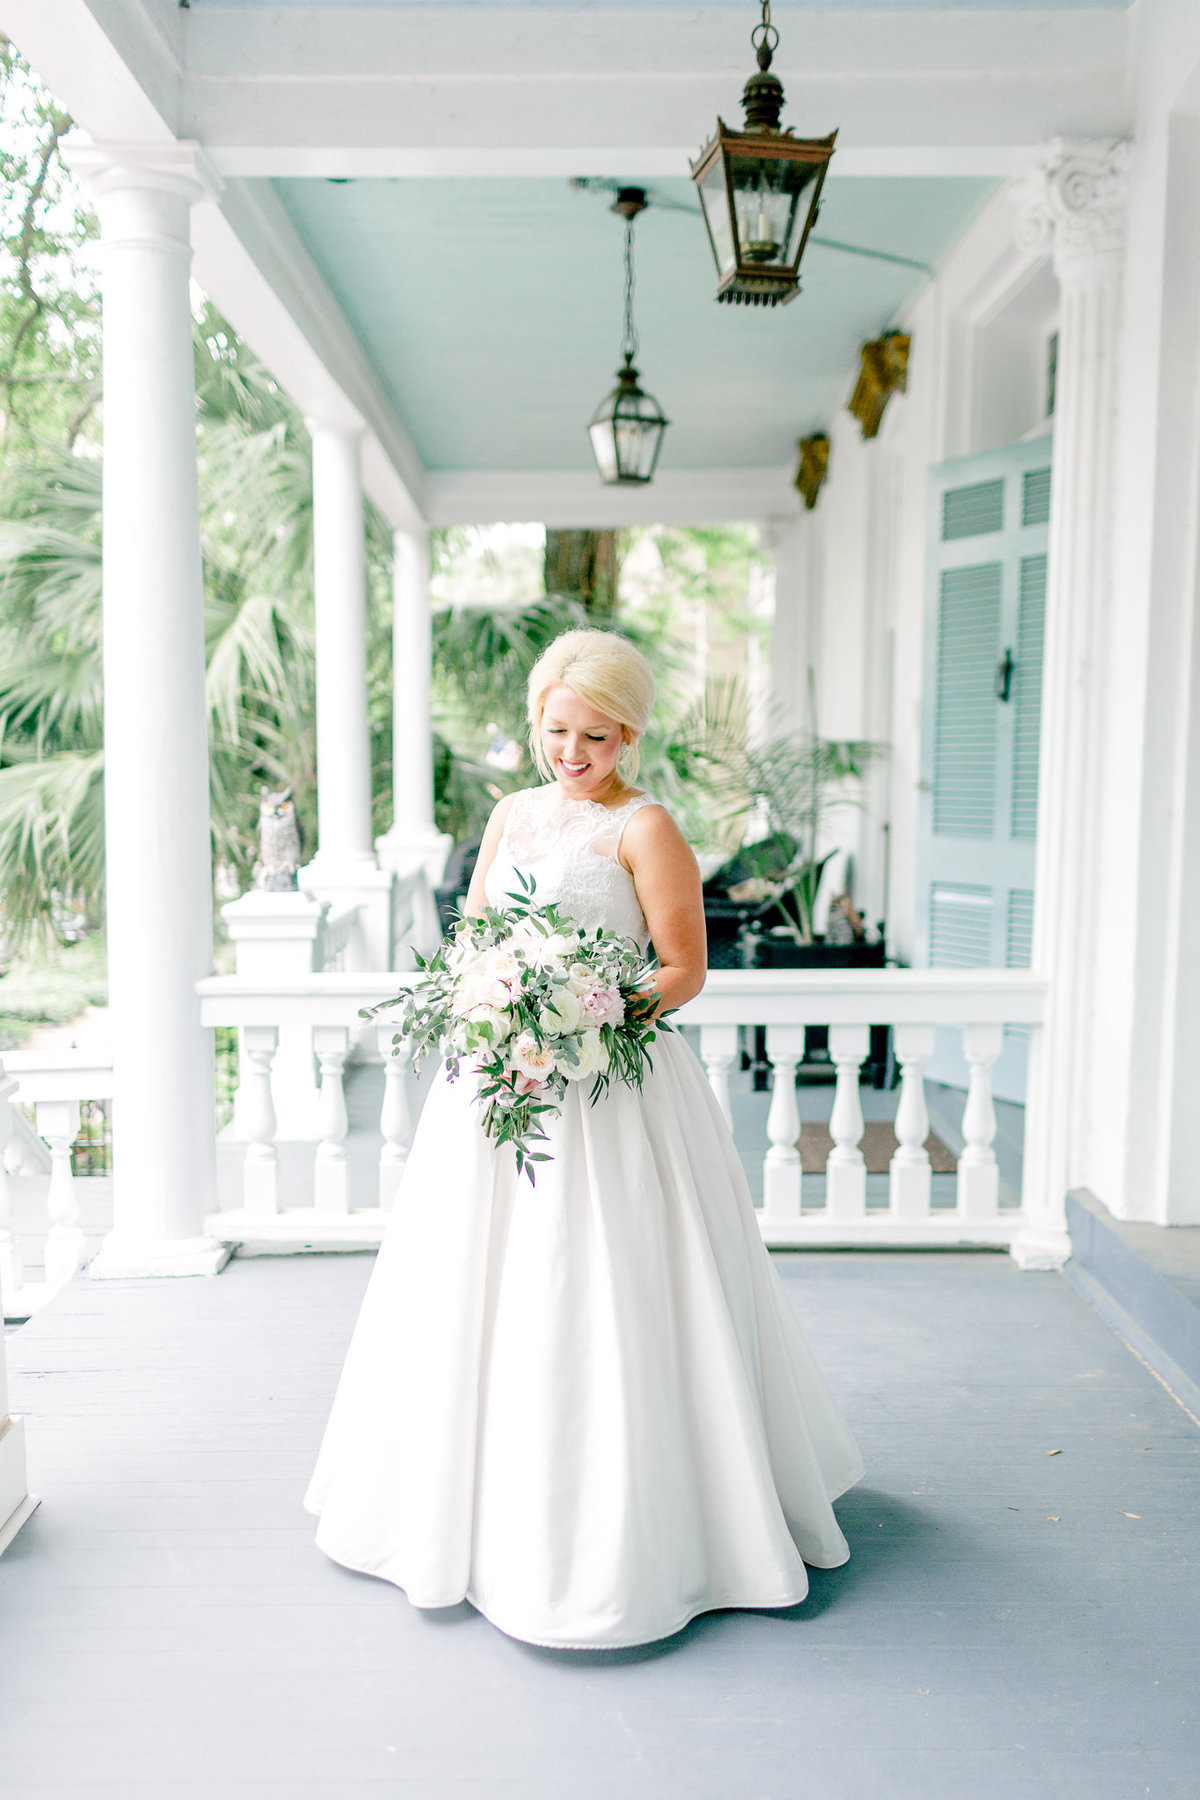 Savannah-Georgia-Wedding-Photographer-Holly-Felts-Photography-Wilmon-Wedding-179